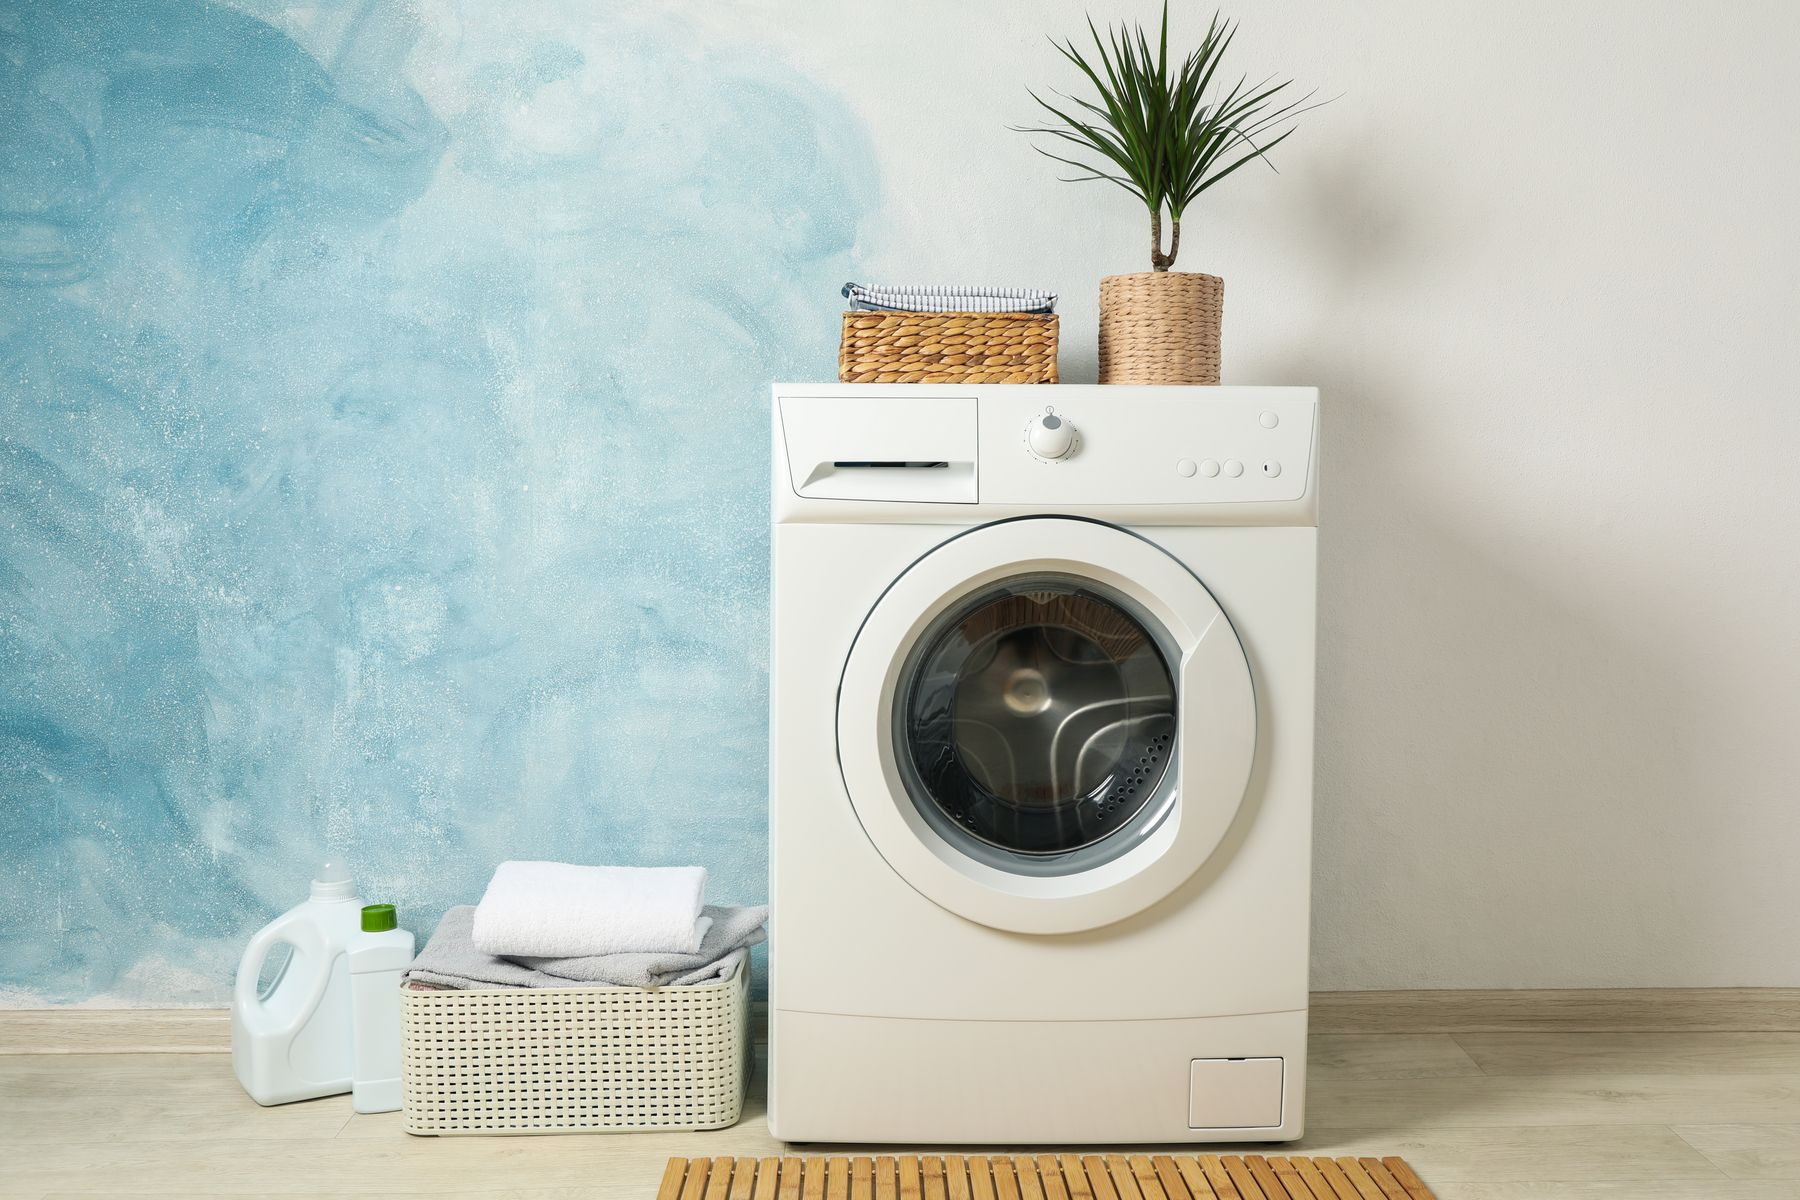 How to Clean Your Top-Loading Washing Machine shutterstock 1610559862